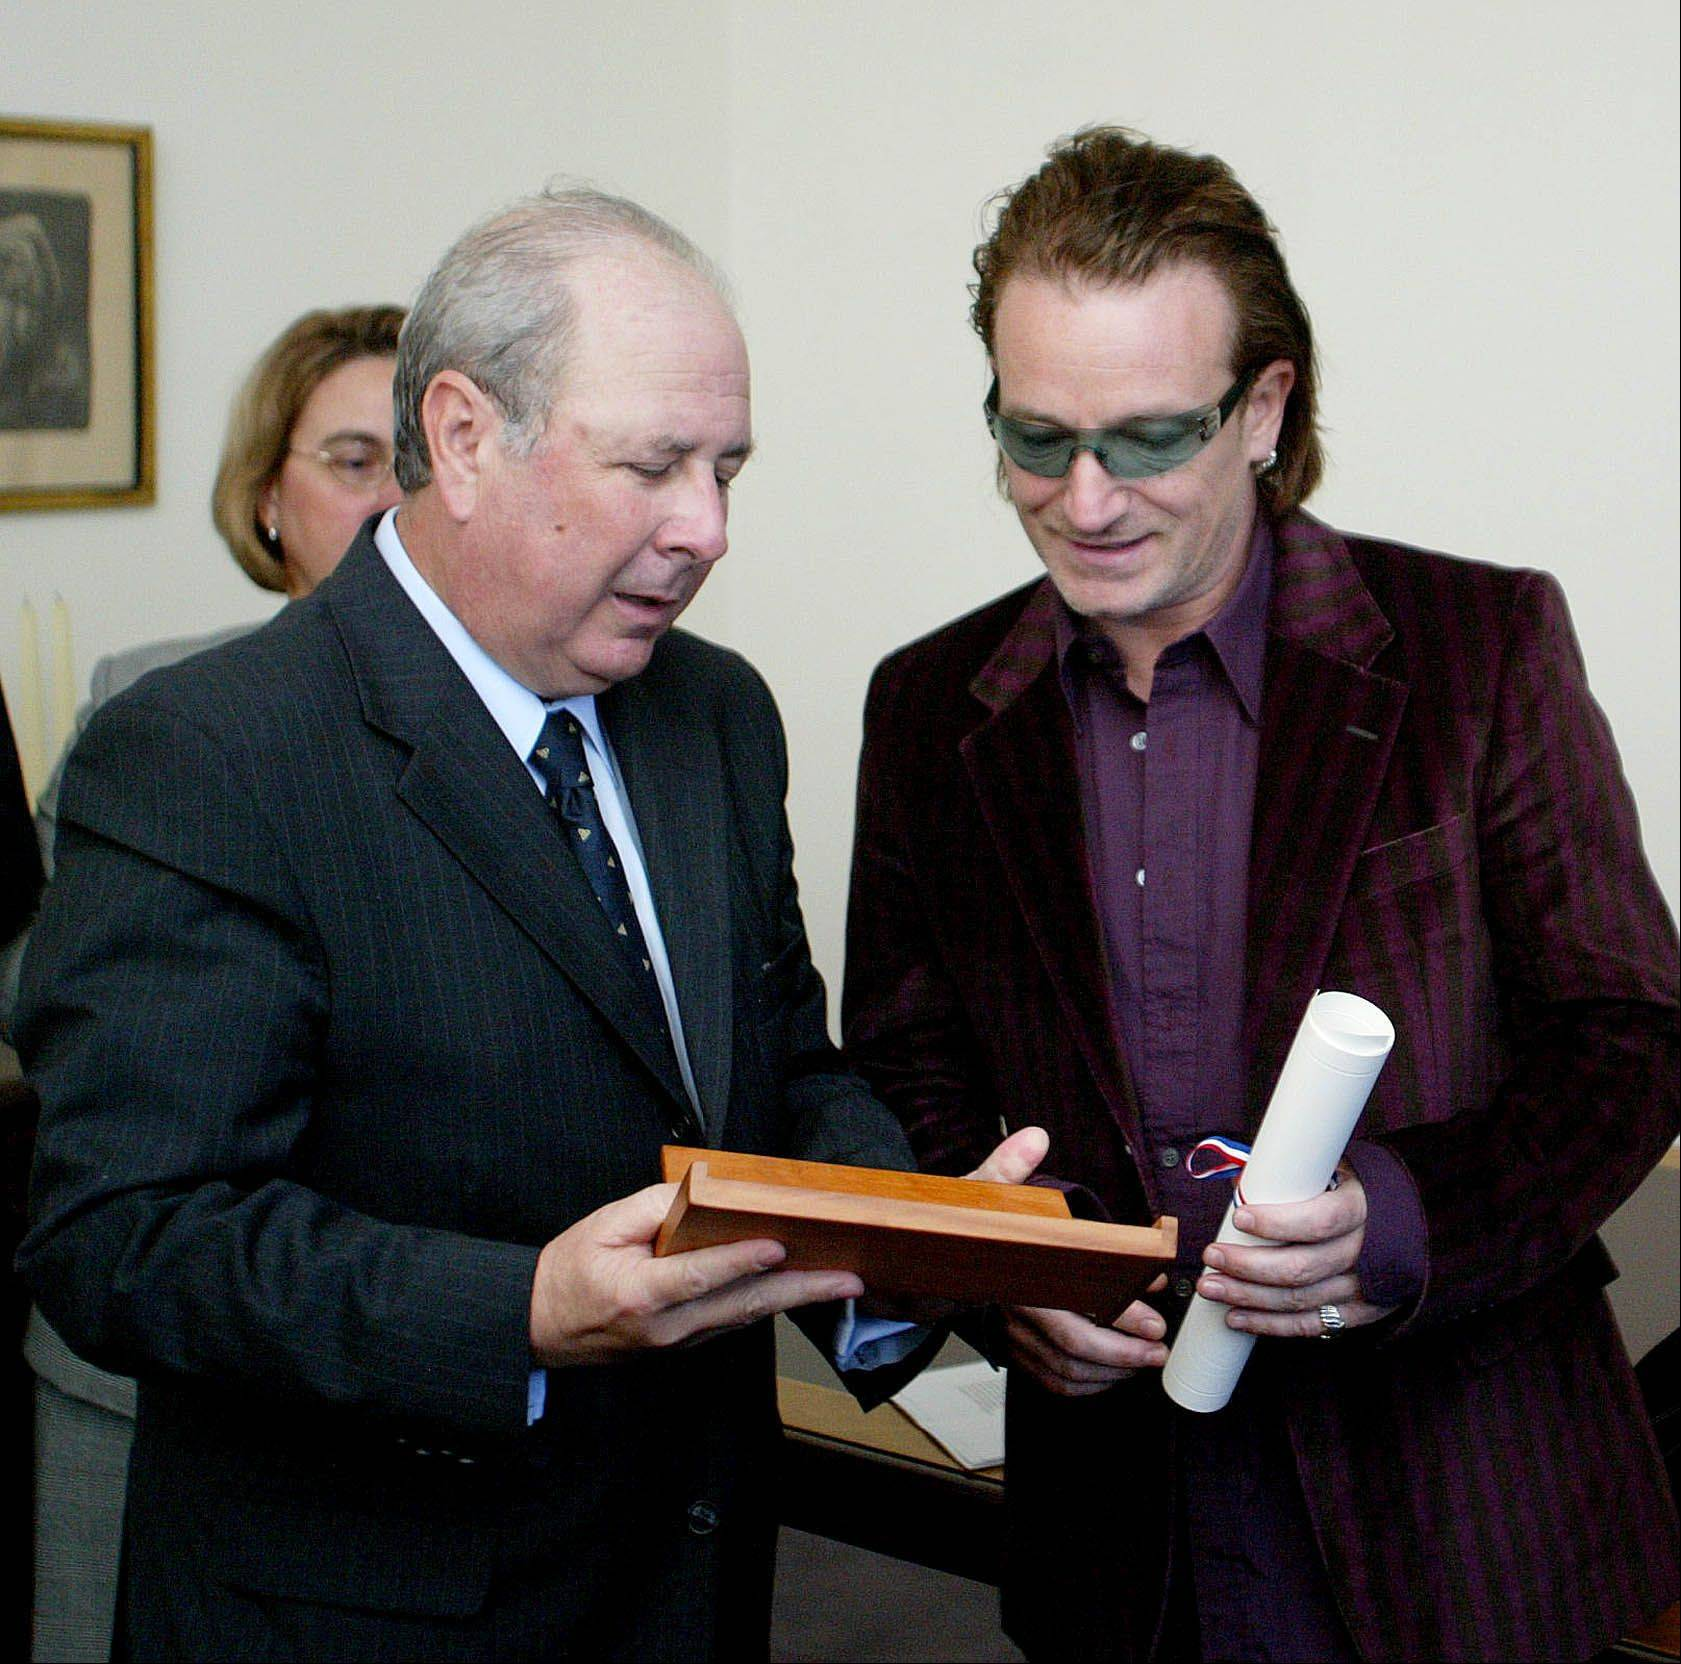 Irish Rock star and frontman for U2, Bono, right, accepts the Pablo Neruda Medal of Honor from the Chilean Ambassador to Ireland Alberto Yoacham at the embassy in Dublin, Thursday Sept. 23, 2004. The award is presented to the 100 most outstanding figures in public life for their contribution to arts and culture all over the world.